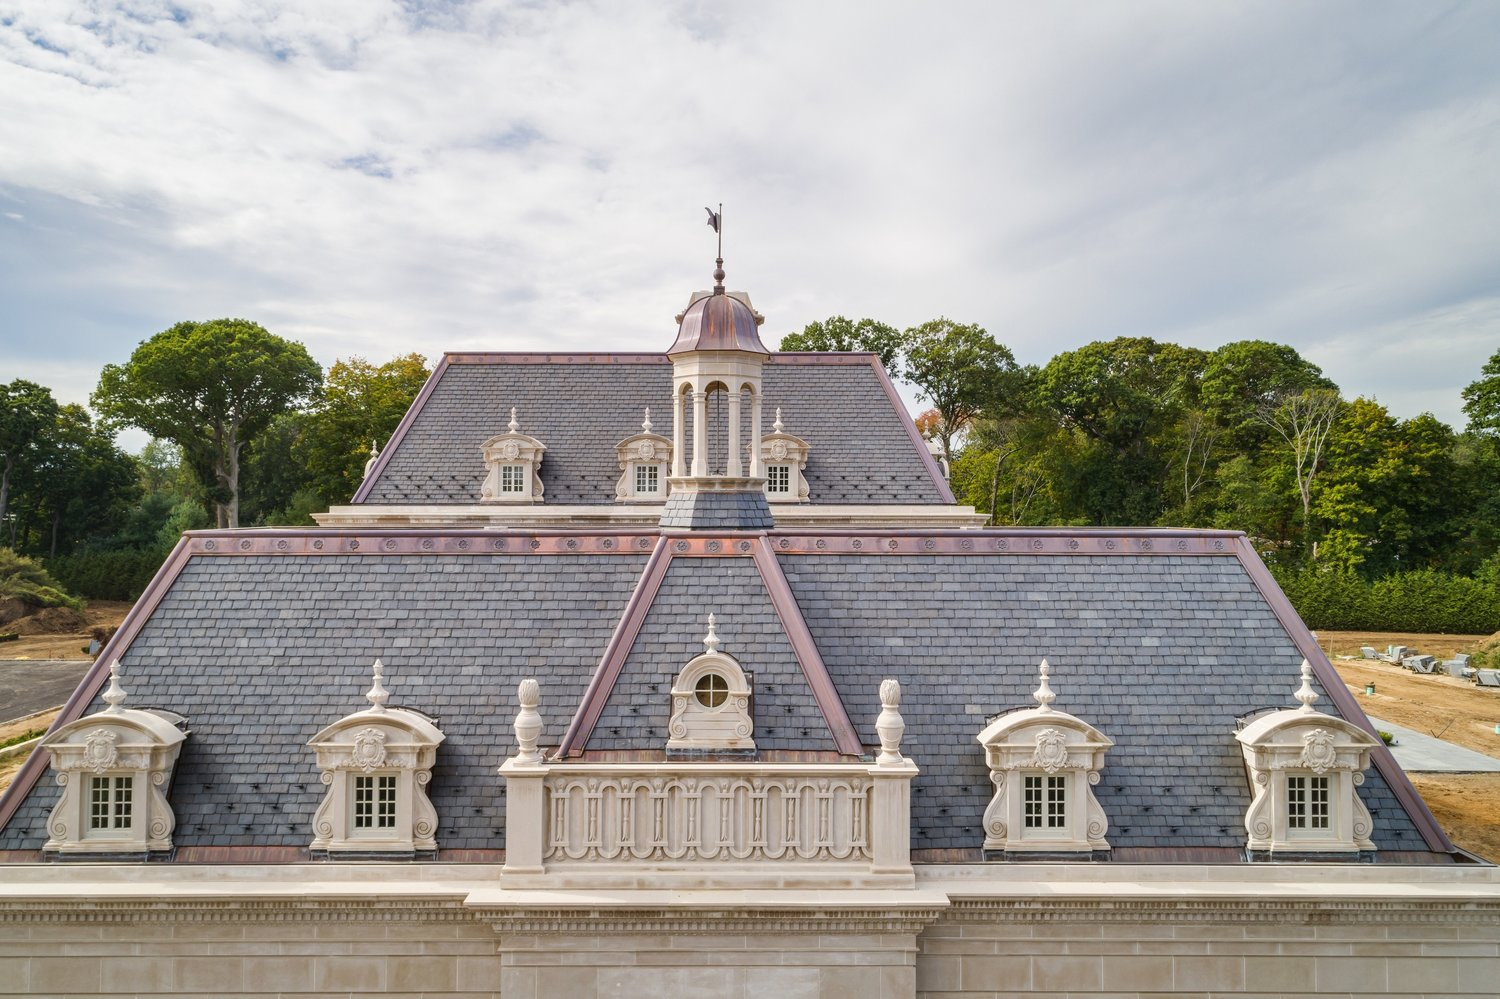 Tour the stately grounds of maison des jardins the 60 million french château on long islands gold coast profilenyc